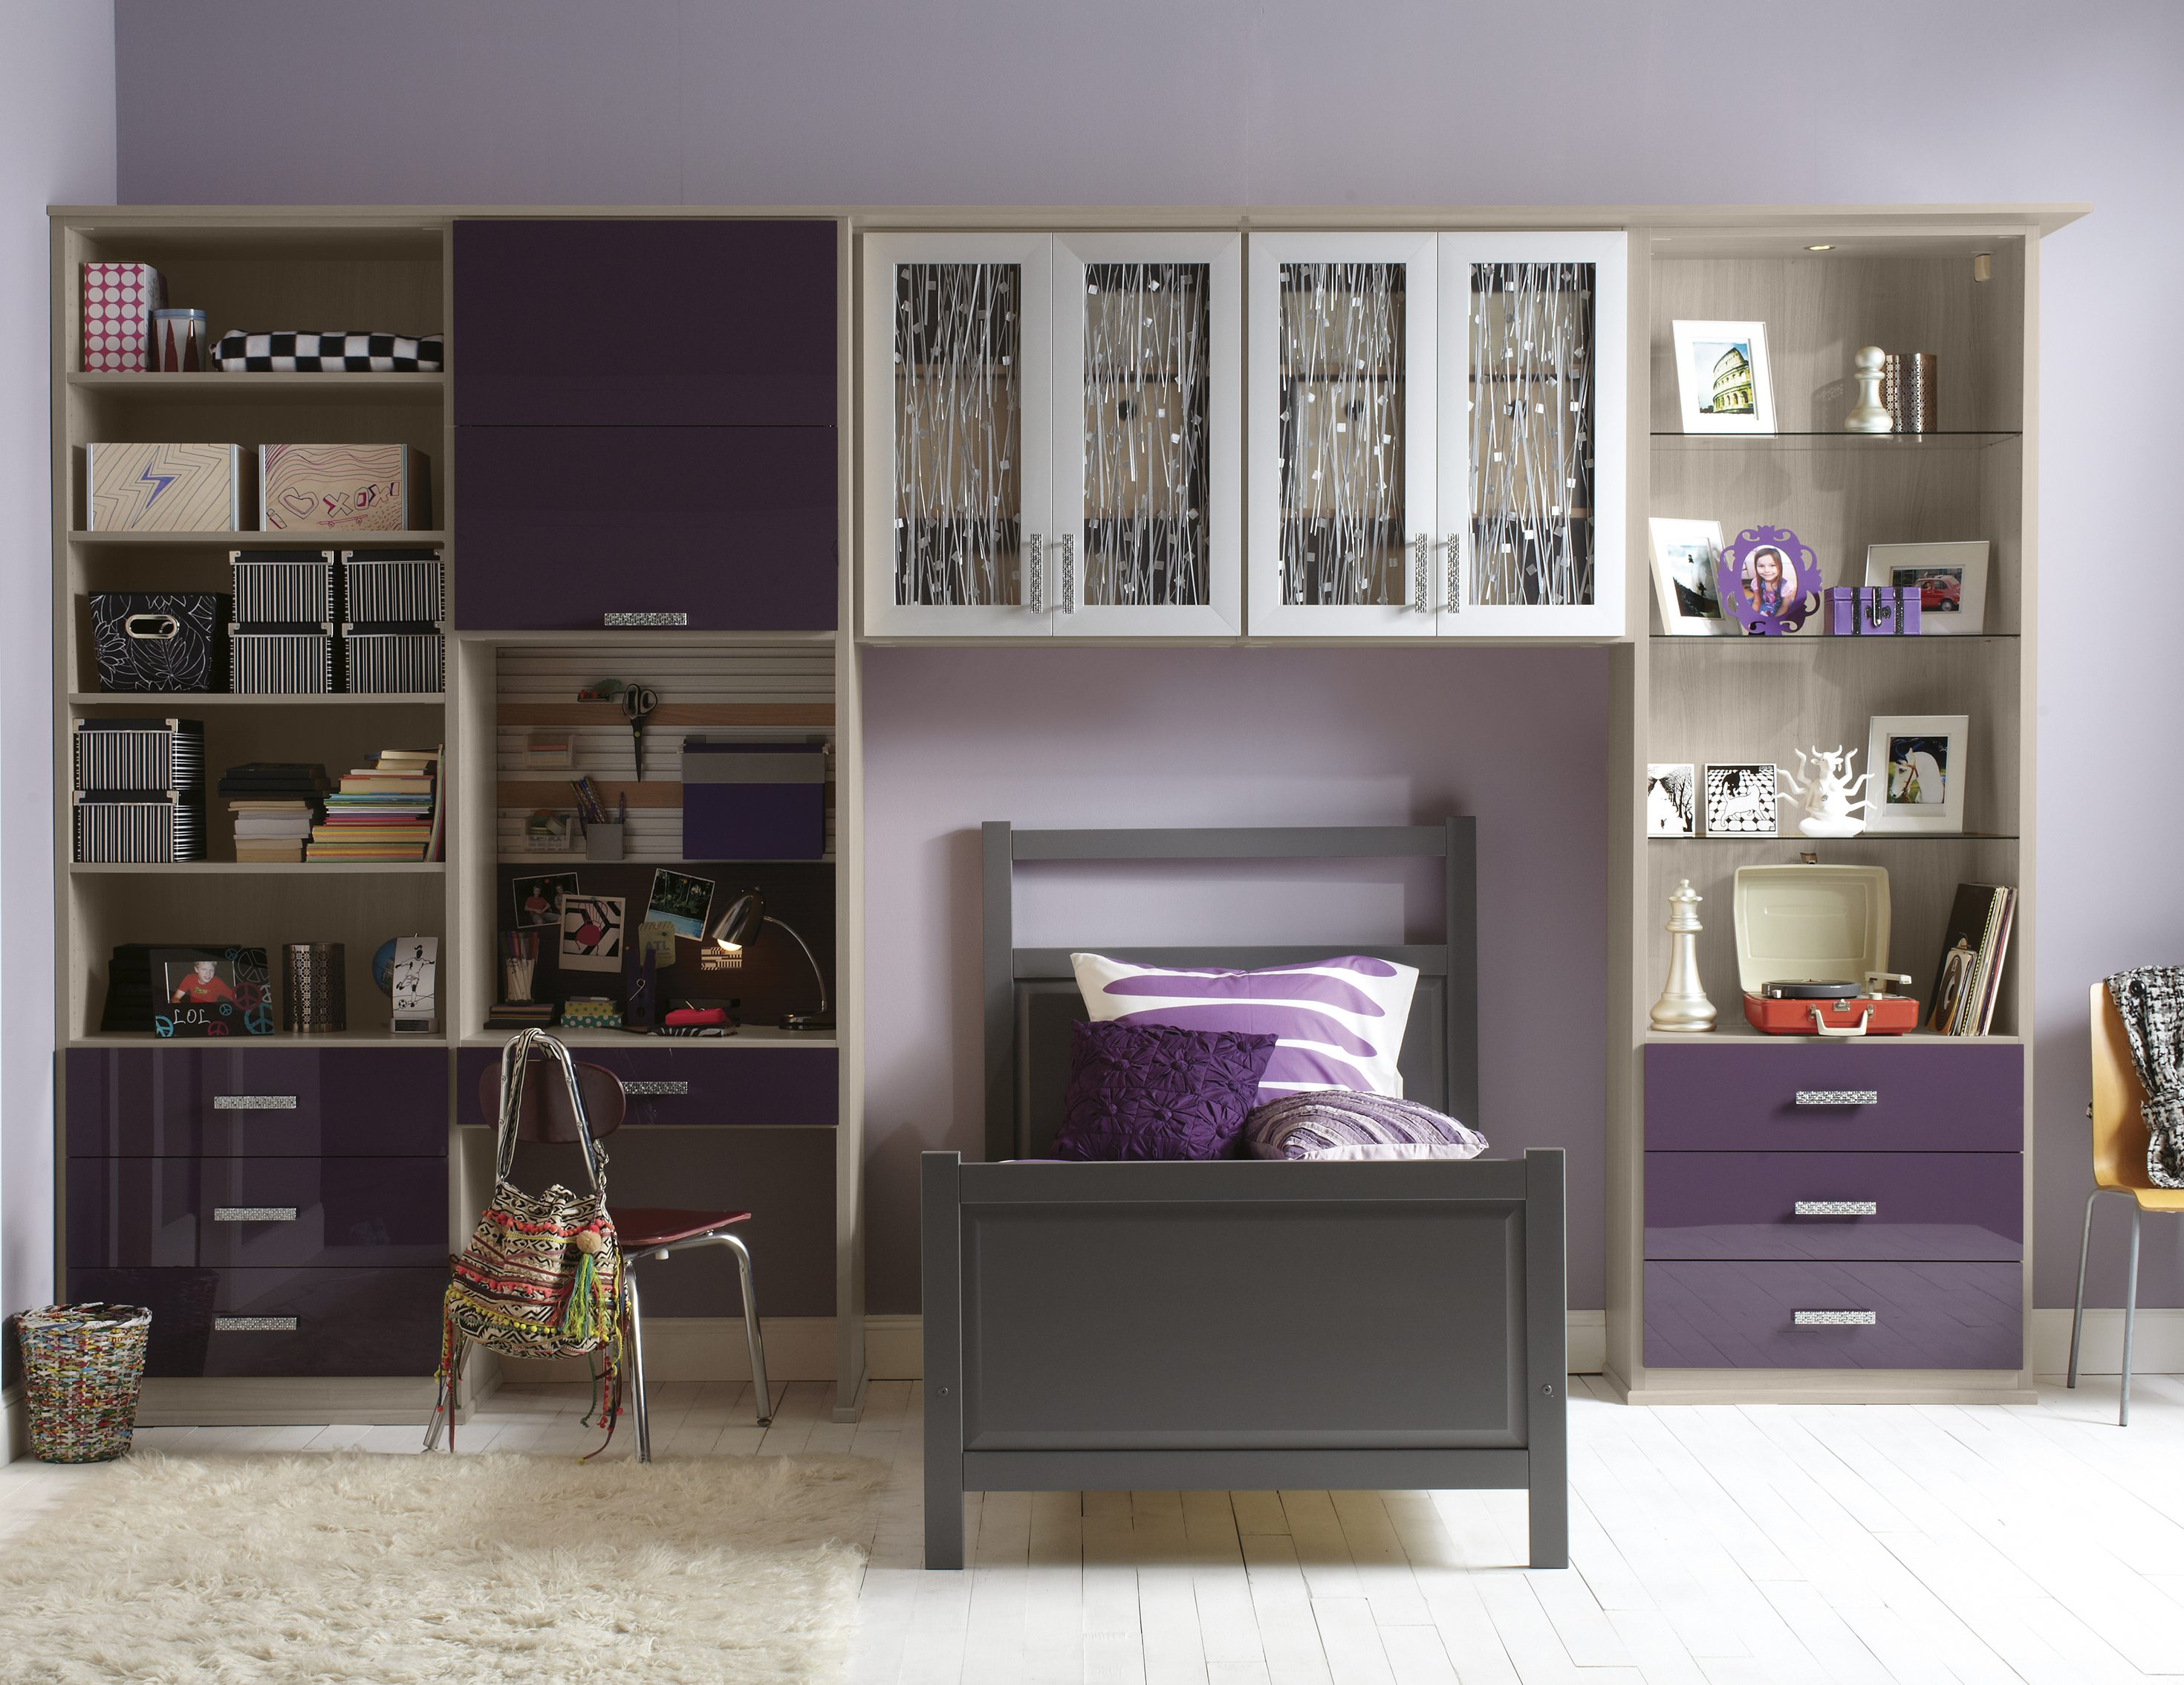 Childrens closet organization Kid Purple And Light Grey Themed Built In Desk And Storage For Childrens Room California Closets Kids Closets Teen Closets Storage Solutions Organization Ideas